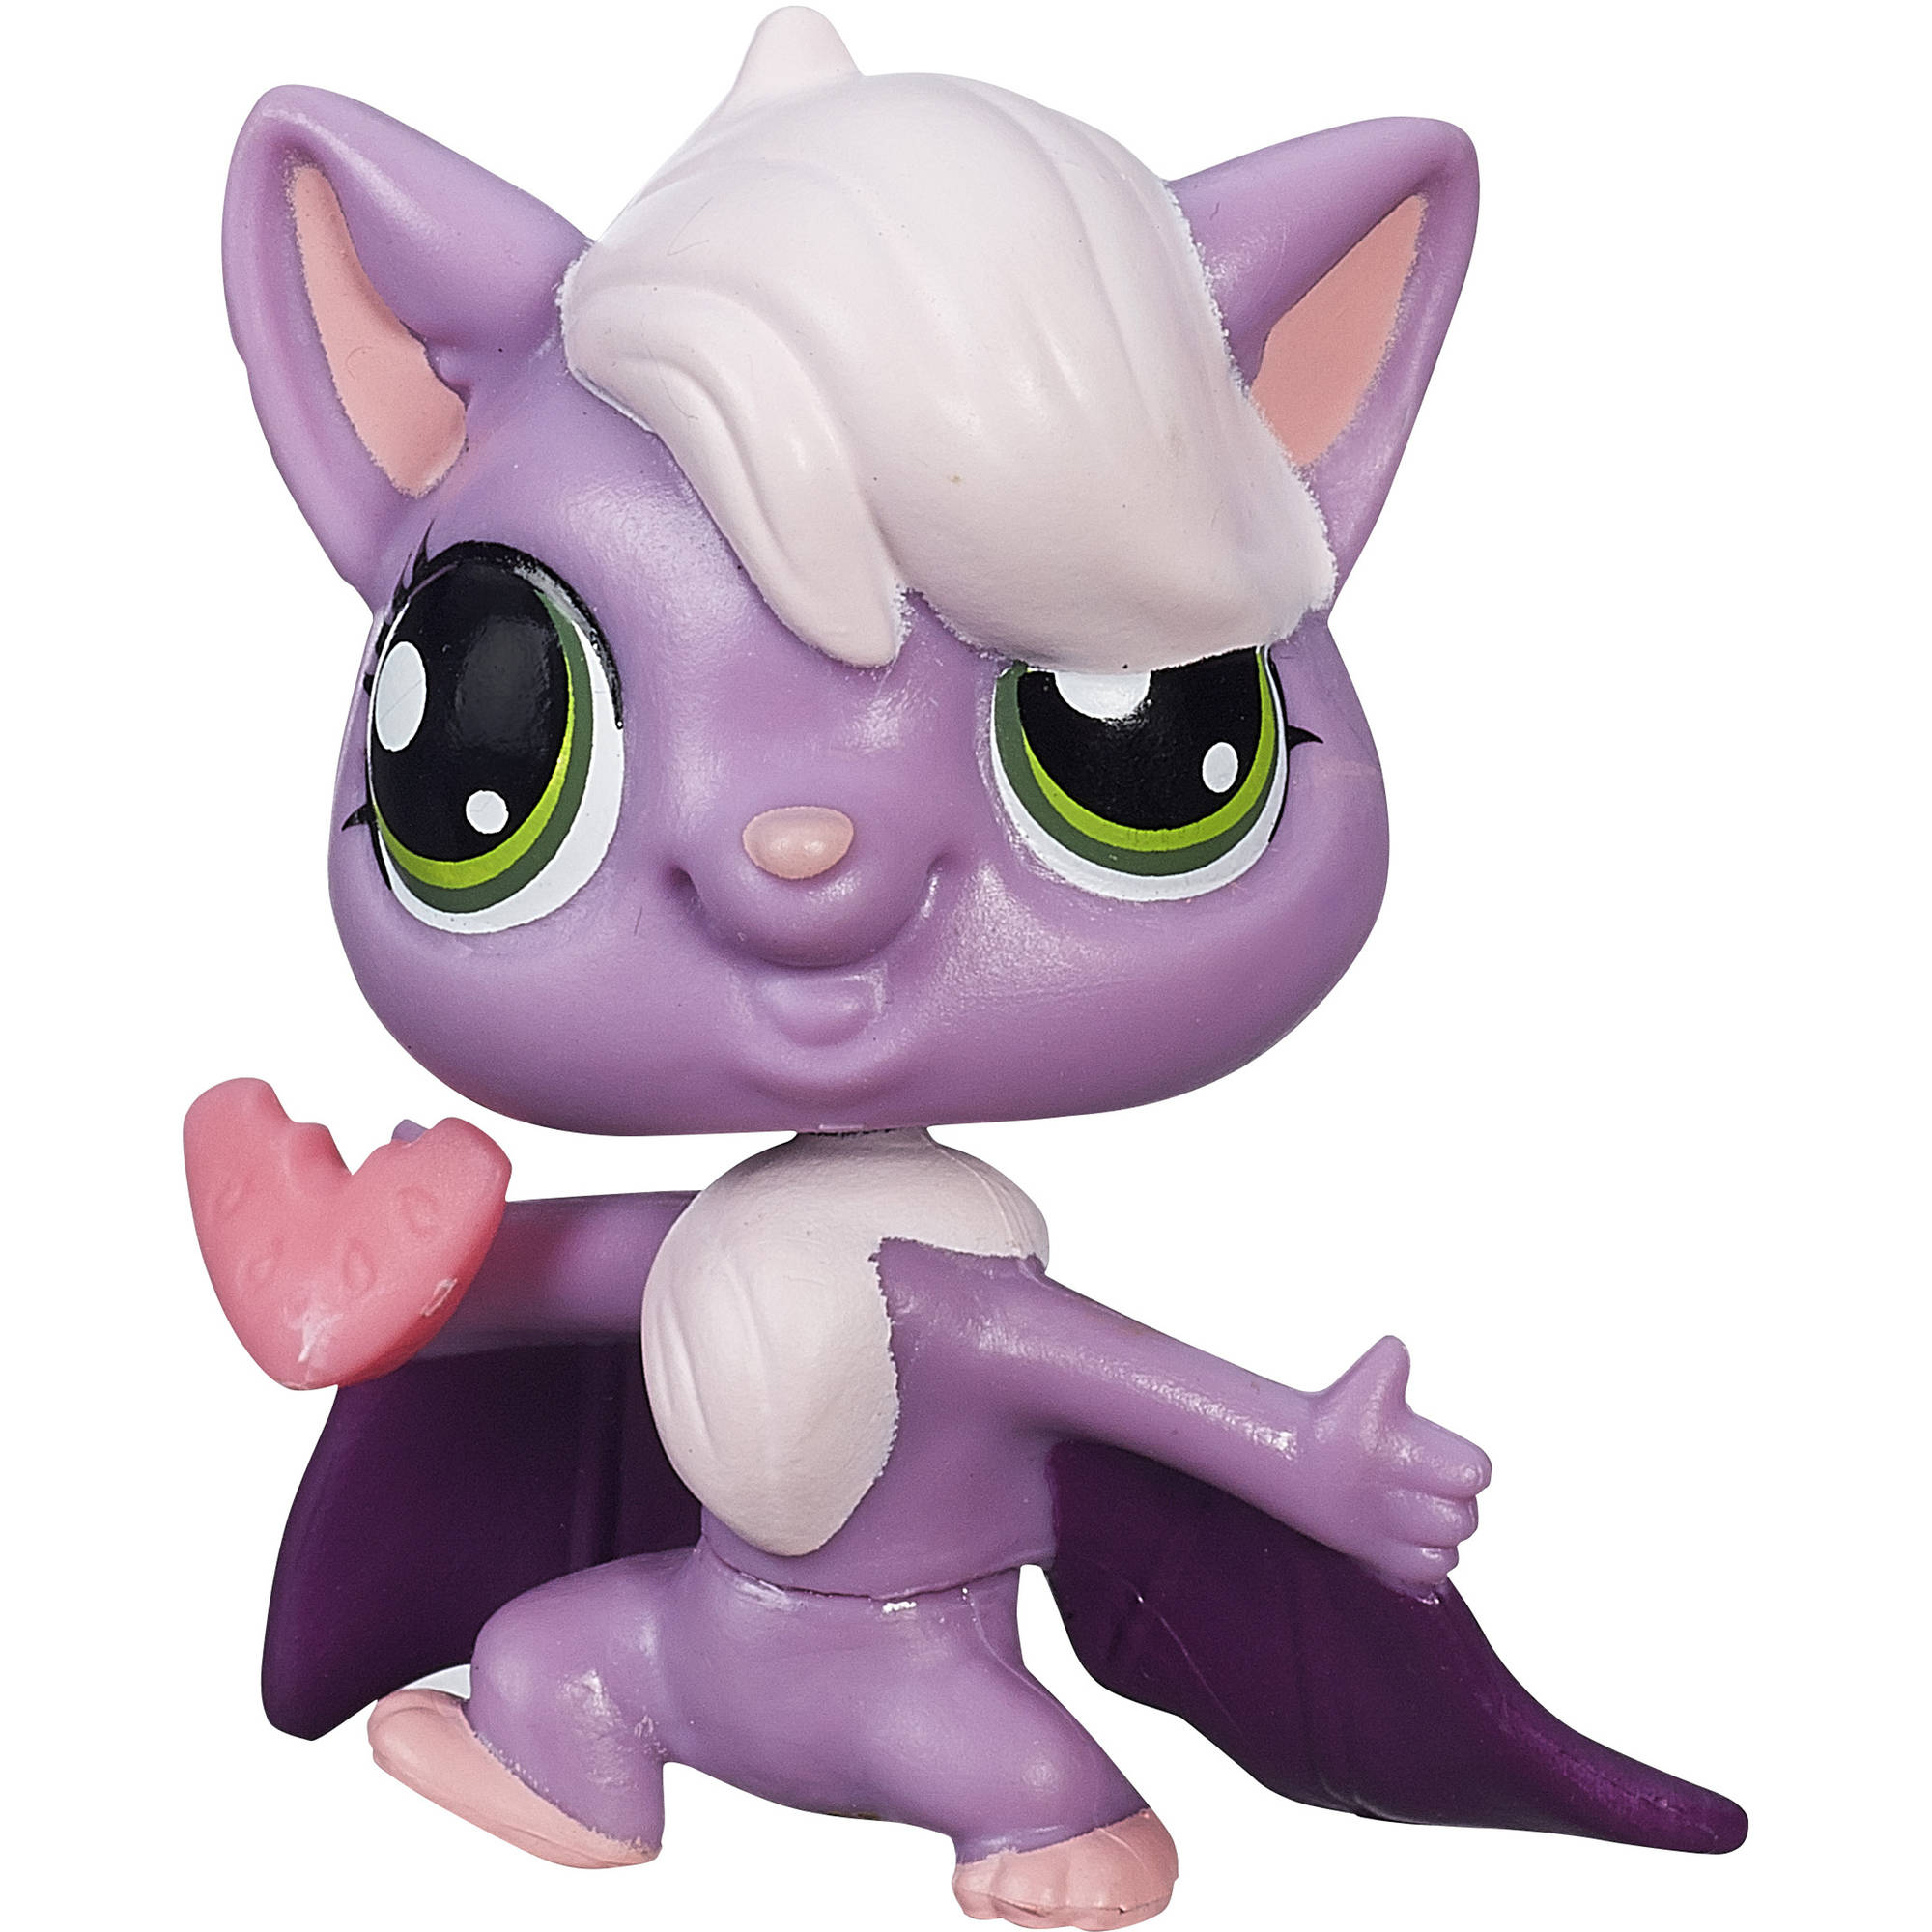 Littlest Pet Shop Get the Pets Single Pack, Stormie Batters